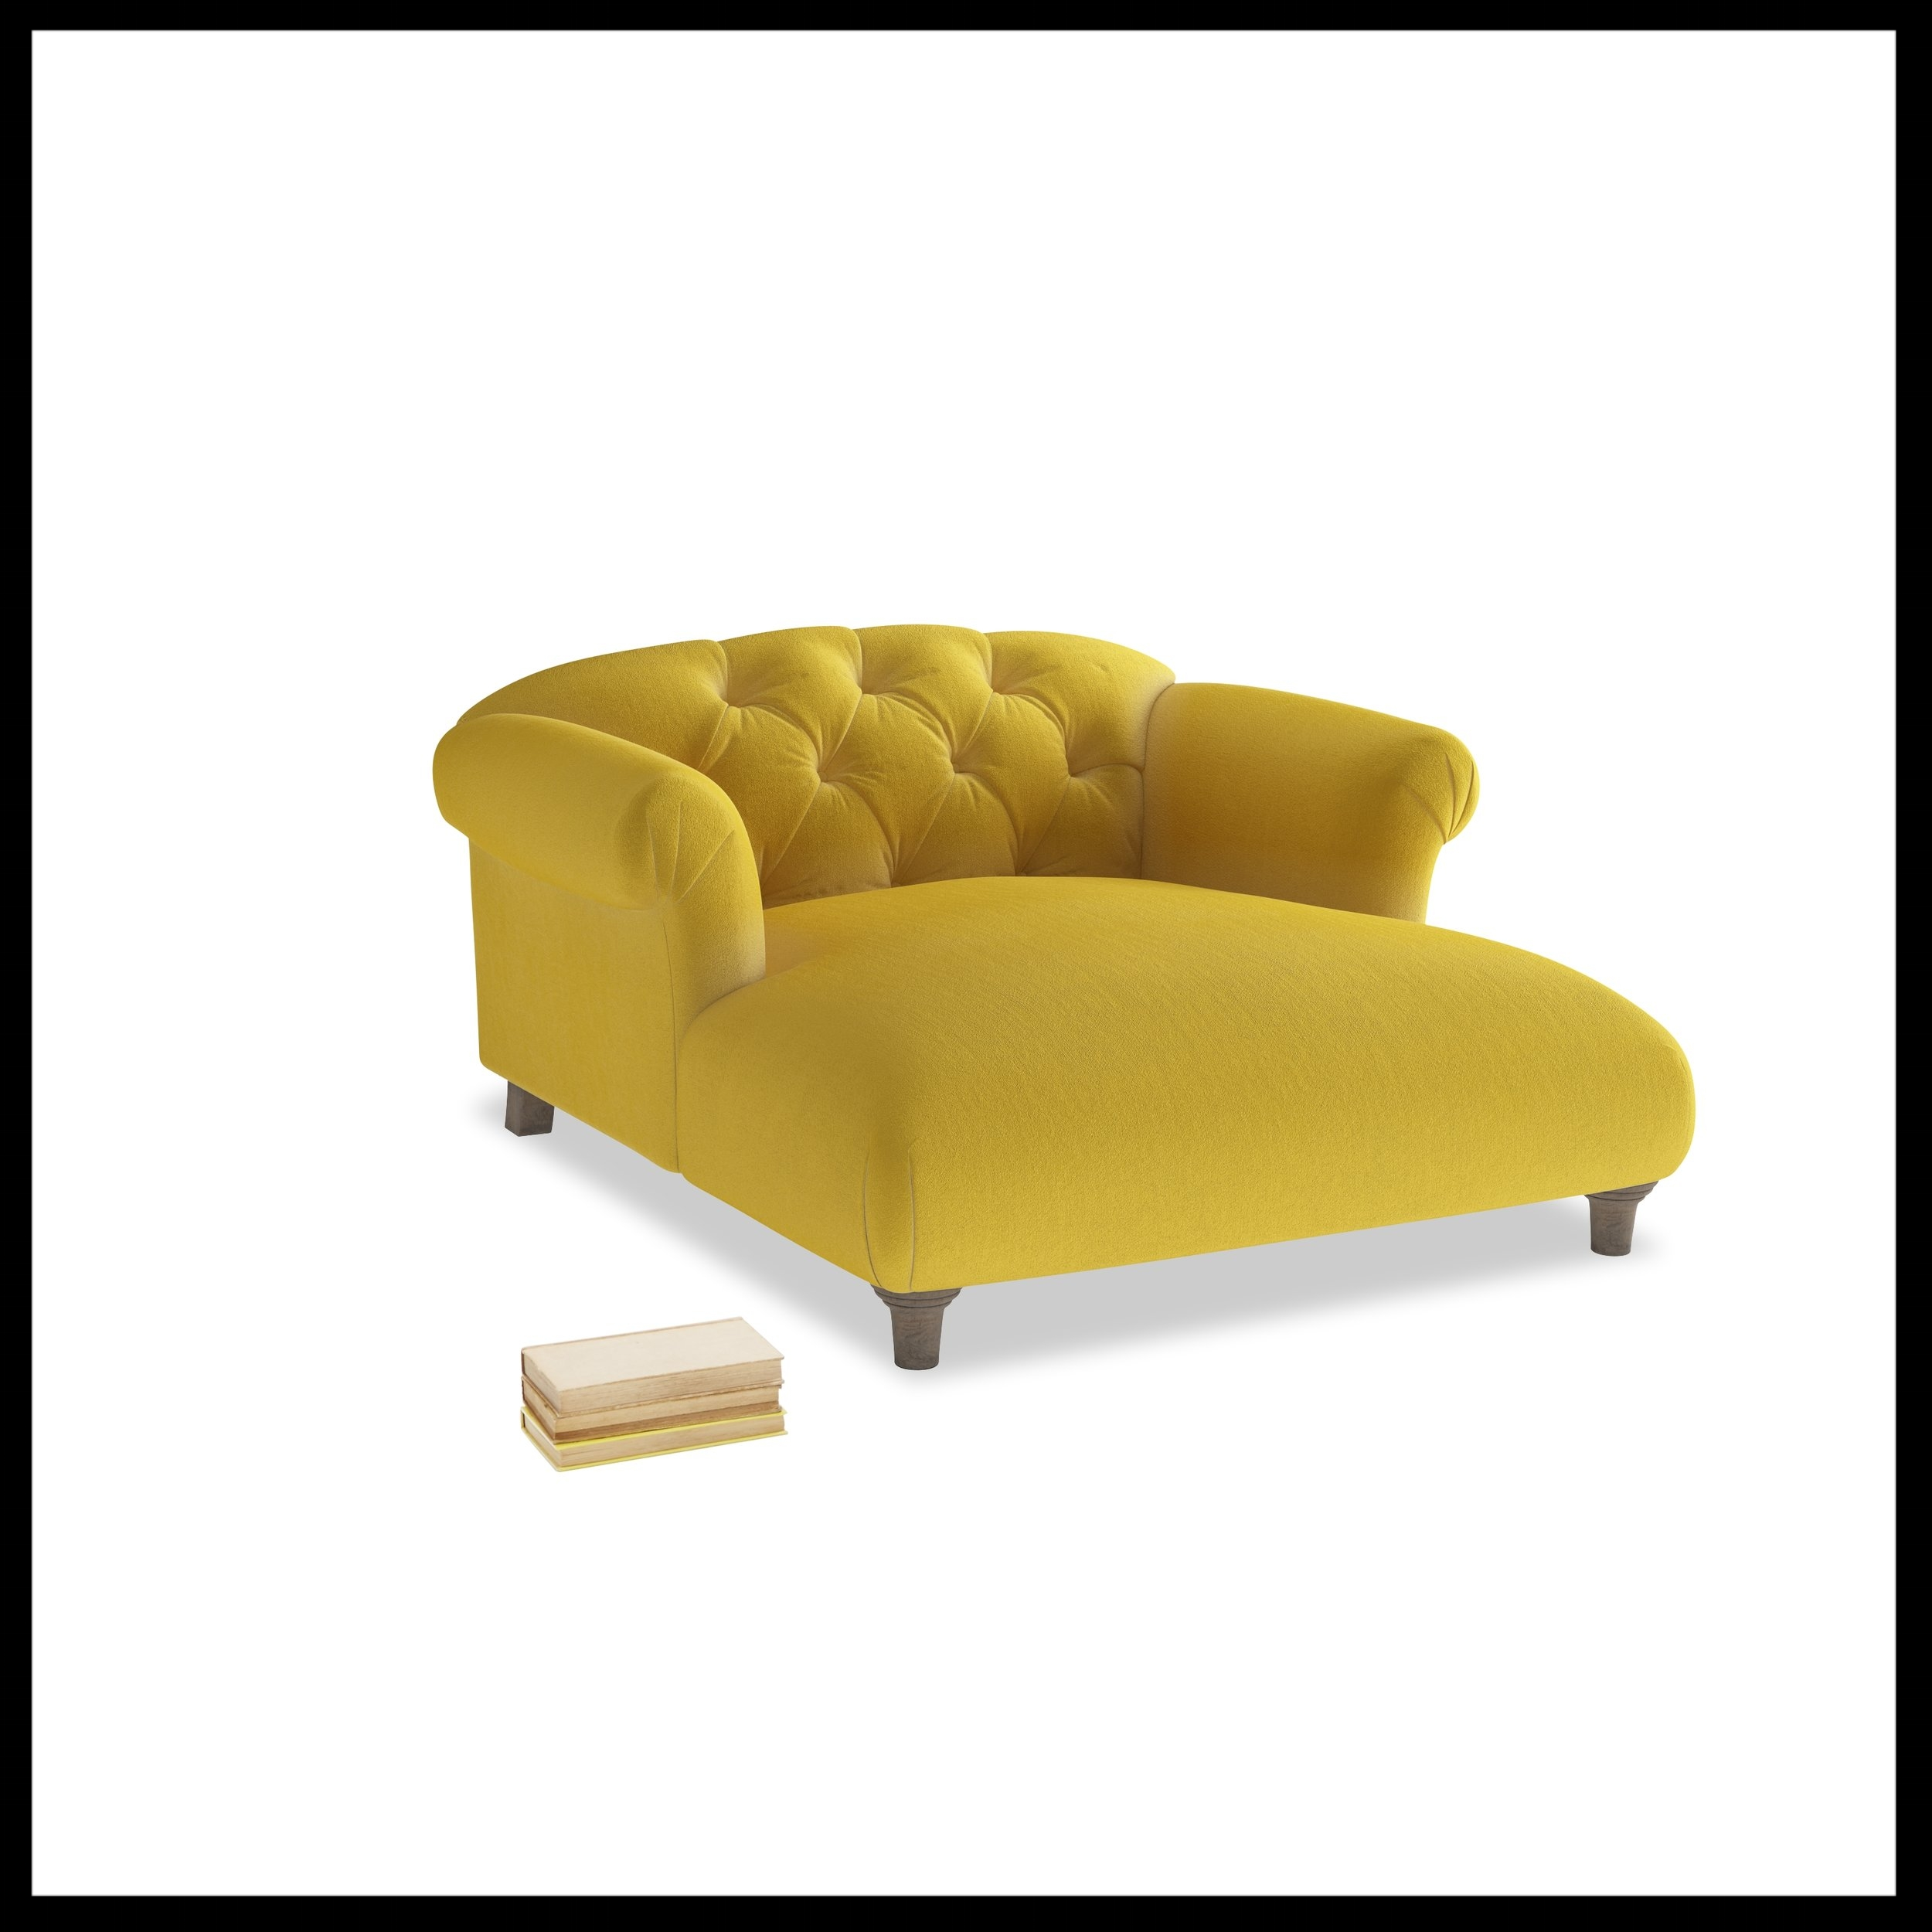 Loaf - Dixie love seat chaise in Bumblebee clever velvet from £1295 high-res.jpg